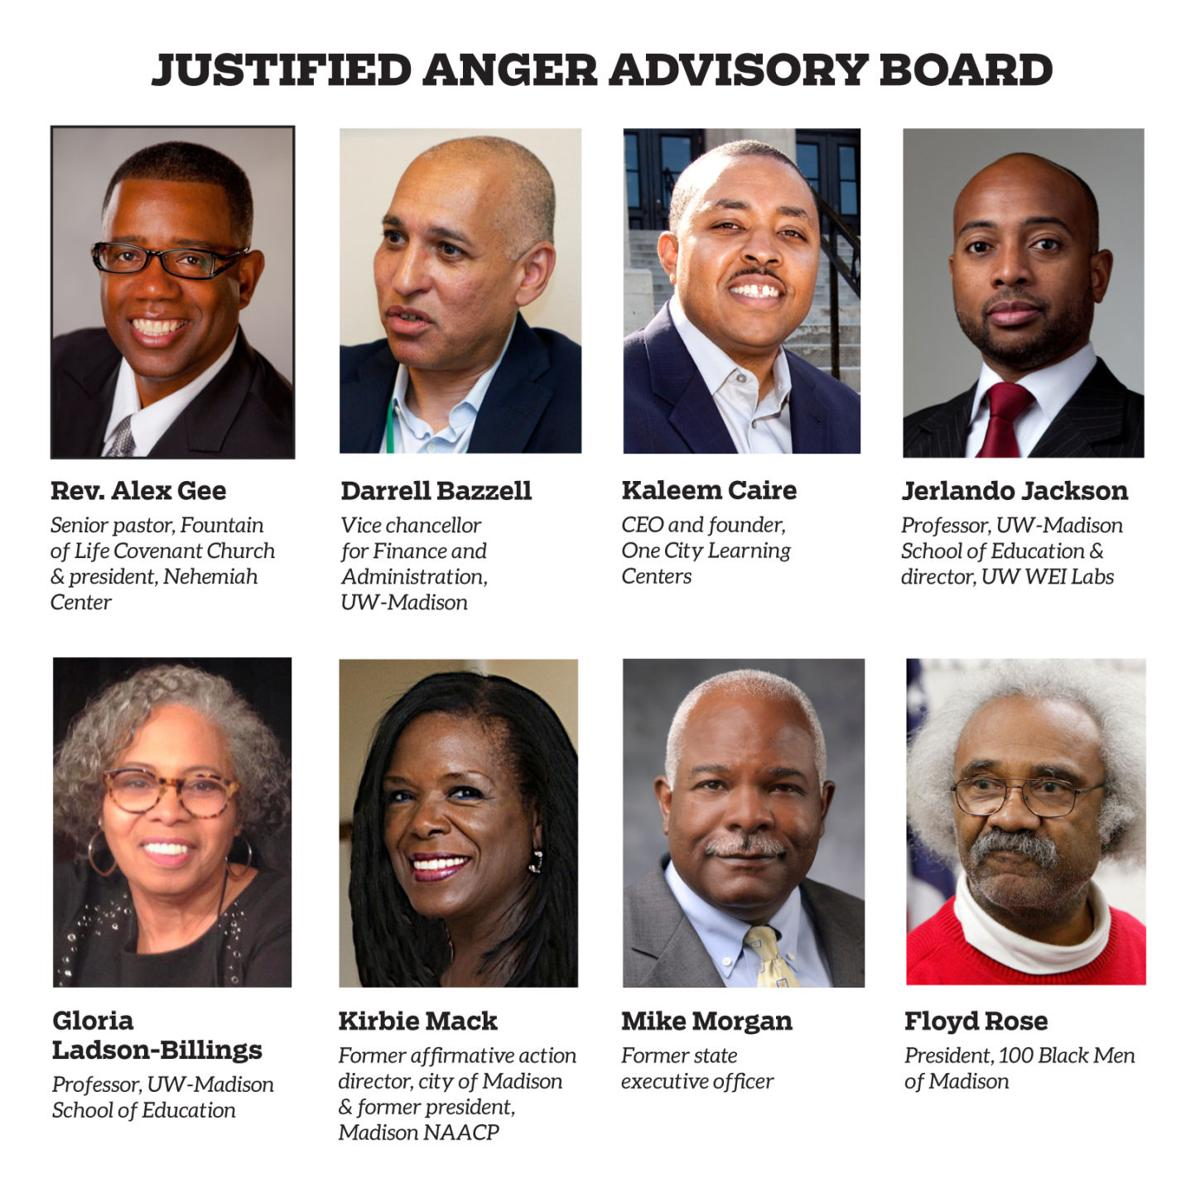 Justified Anger advisory board